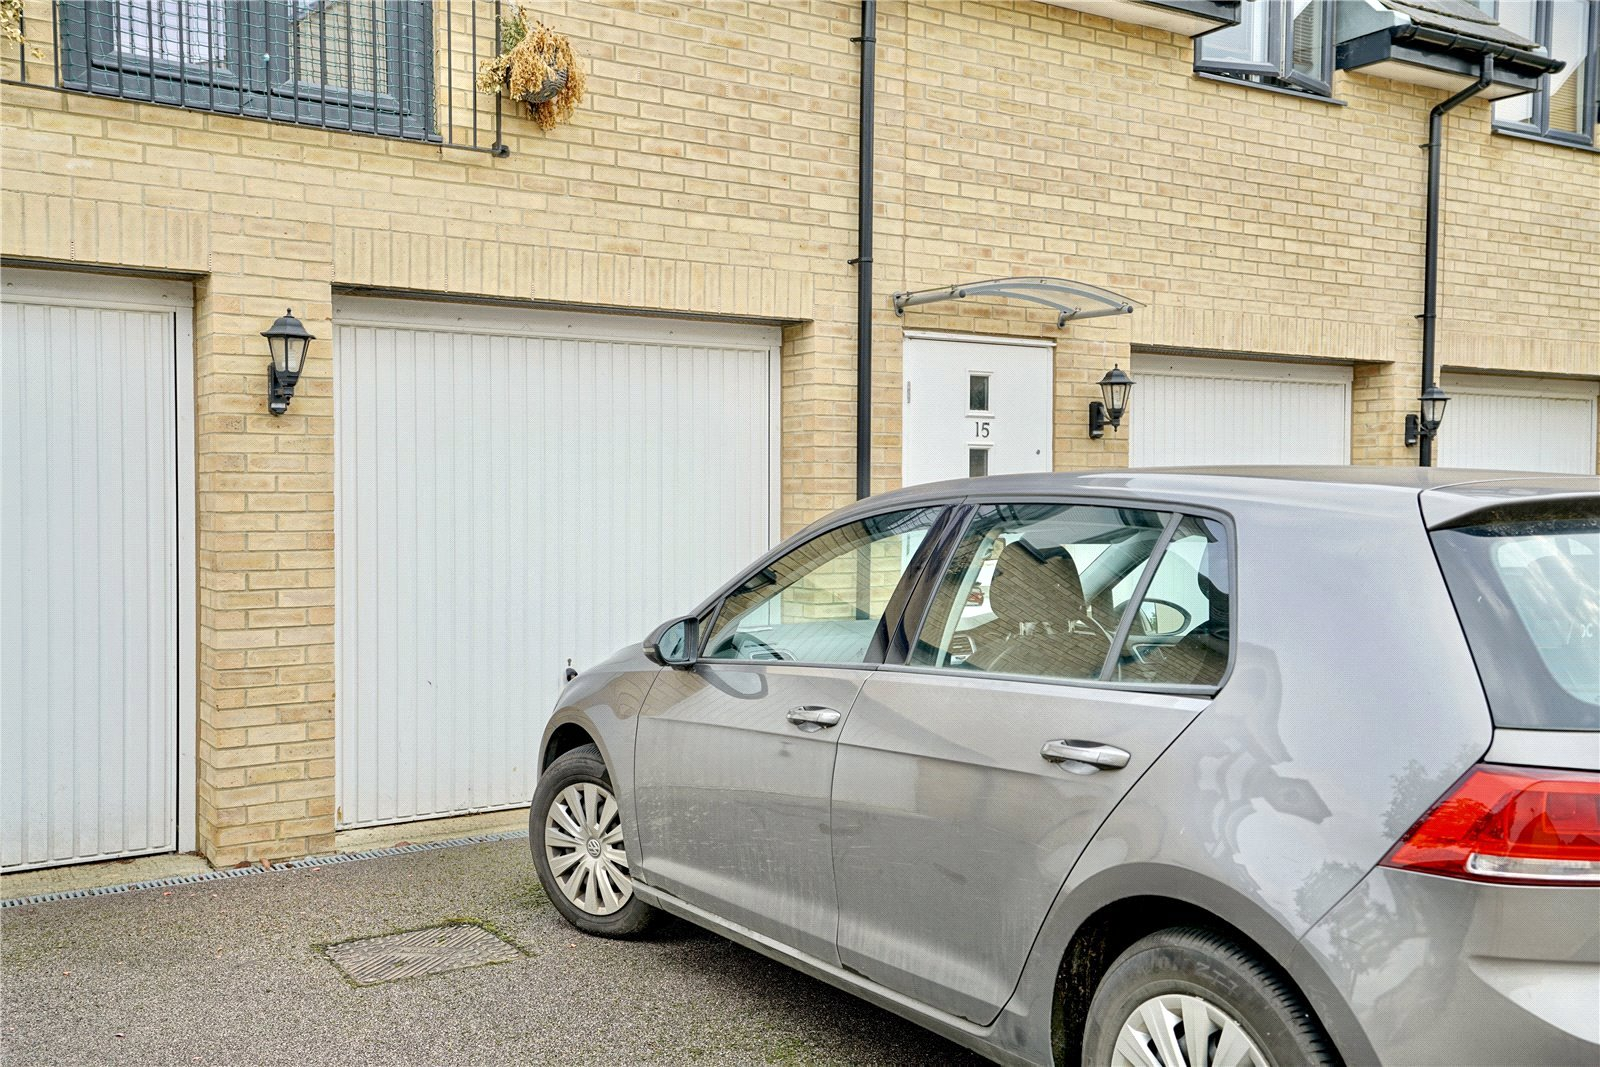 3 bed house for sale in St. Ives, PE27 5DL  - Property Image 16